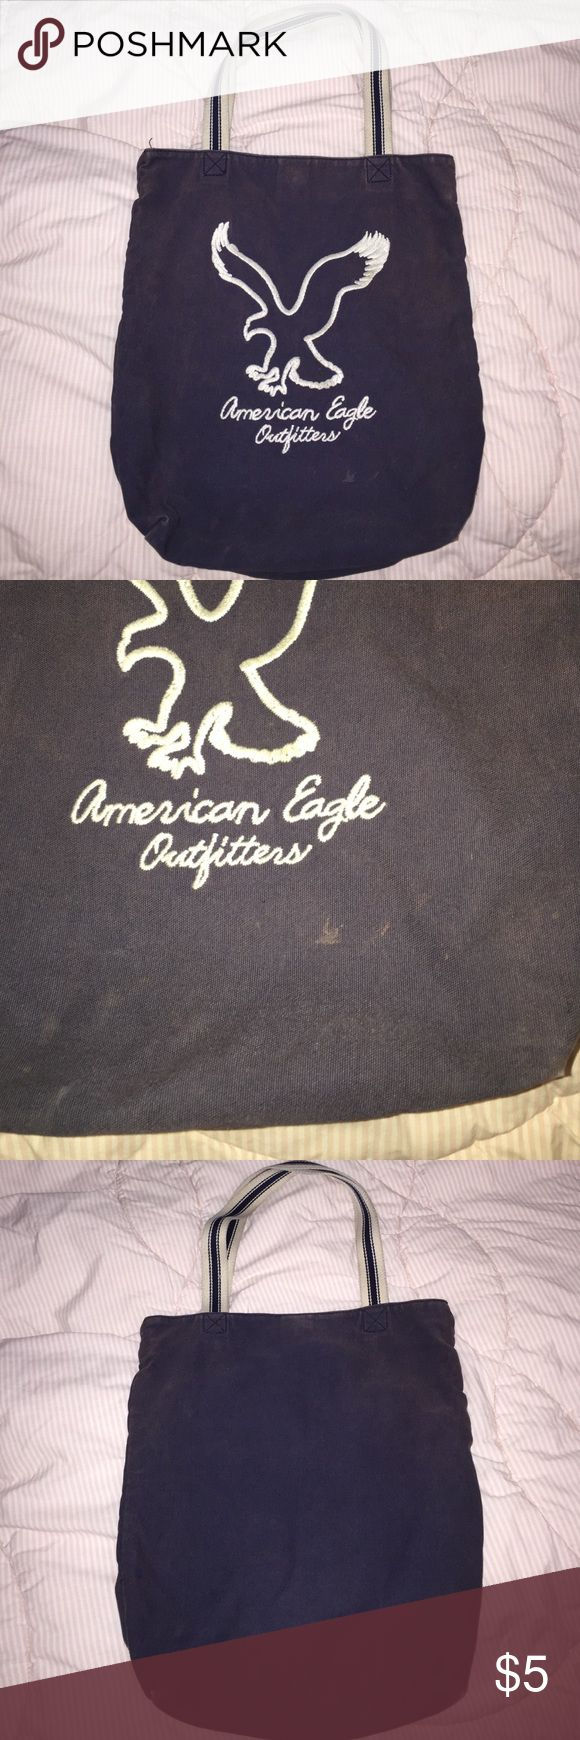 Blue American Eagle tote bag Blue American Eagle tote bag. Faded in color a bit and has a few marks. American Eagle Outfitters Bags Totes